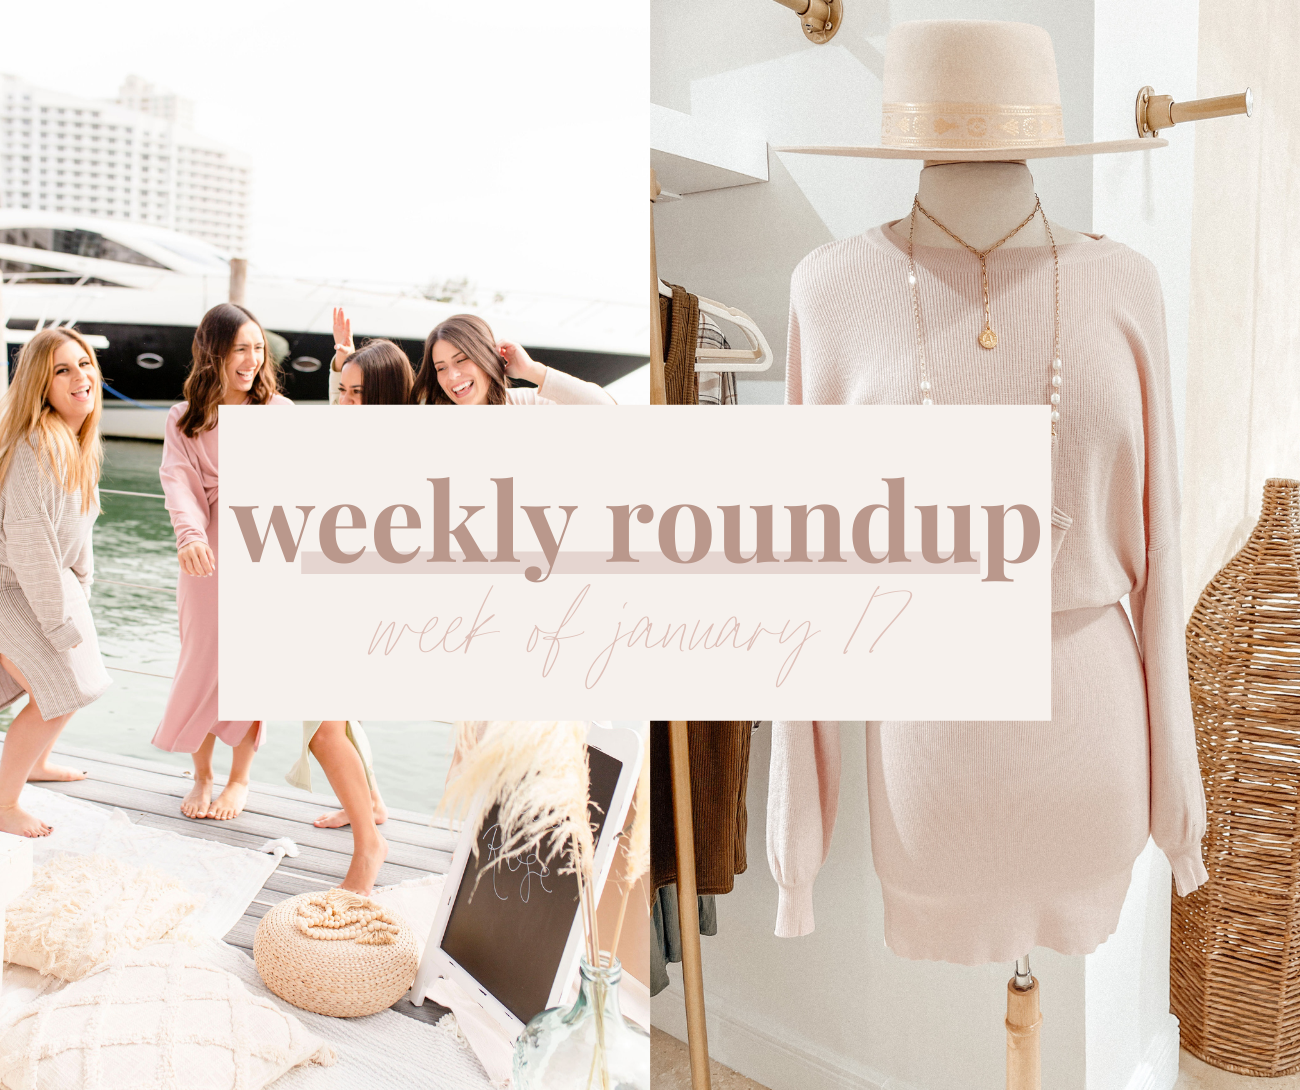 Weekly Roundup - Week of January 17